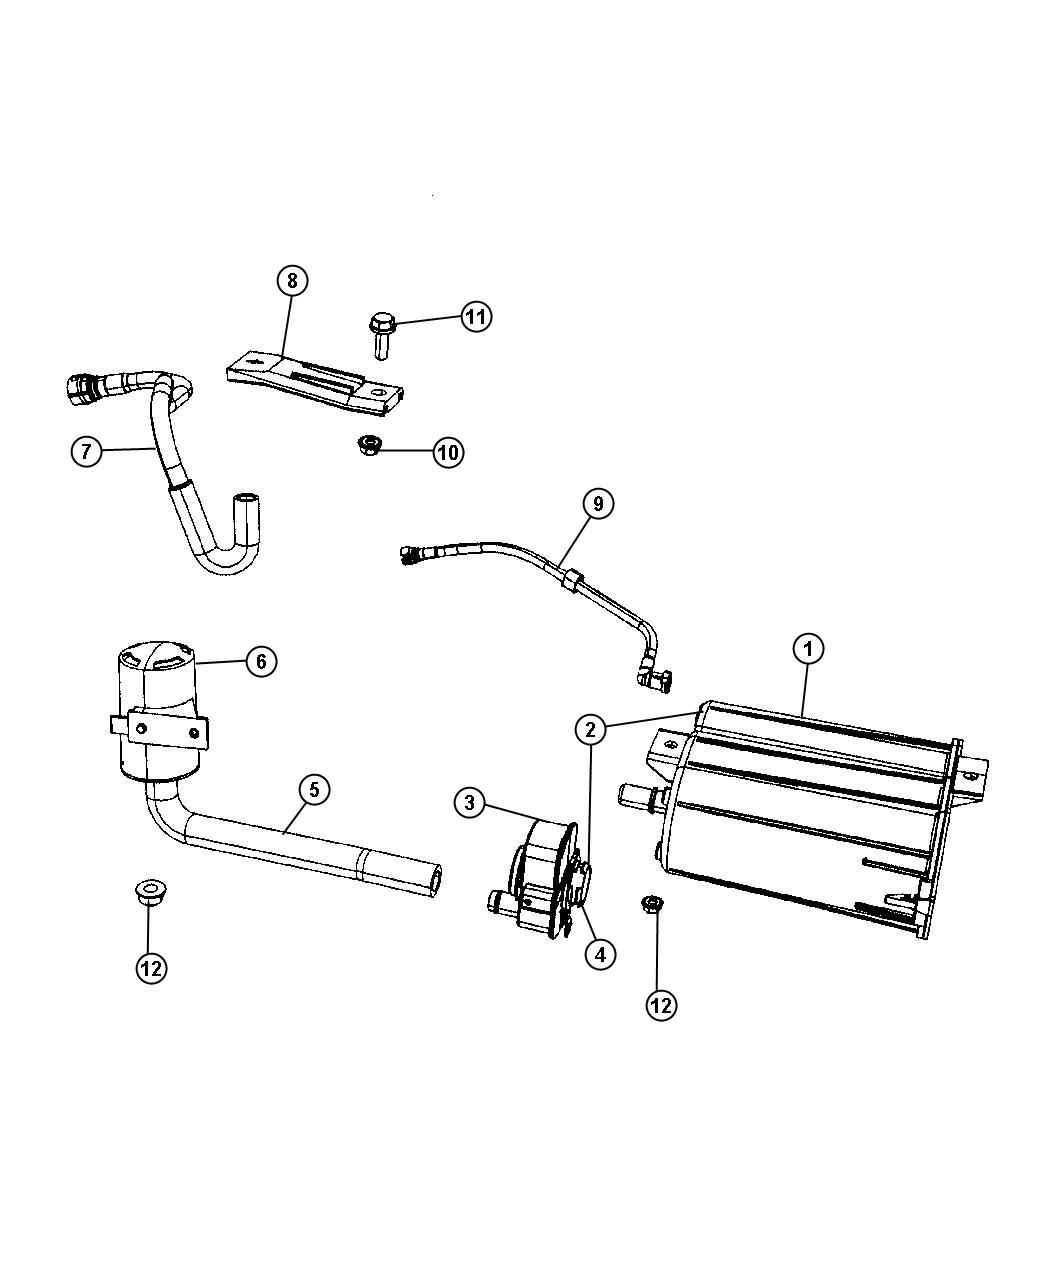 2009 dodge caliber fuel line diagram